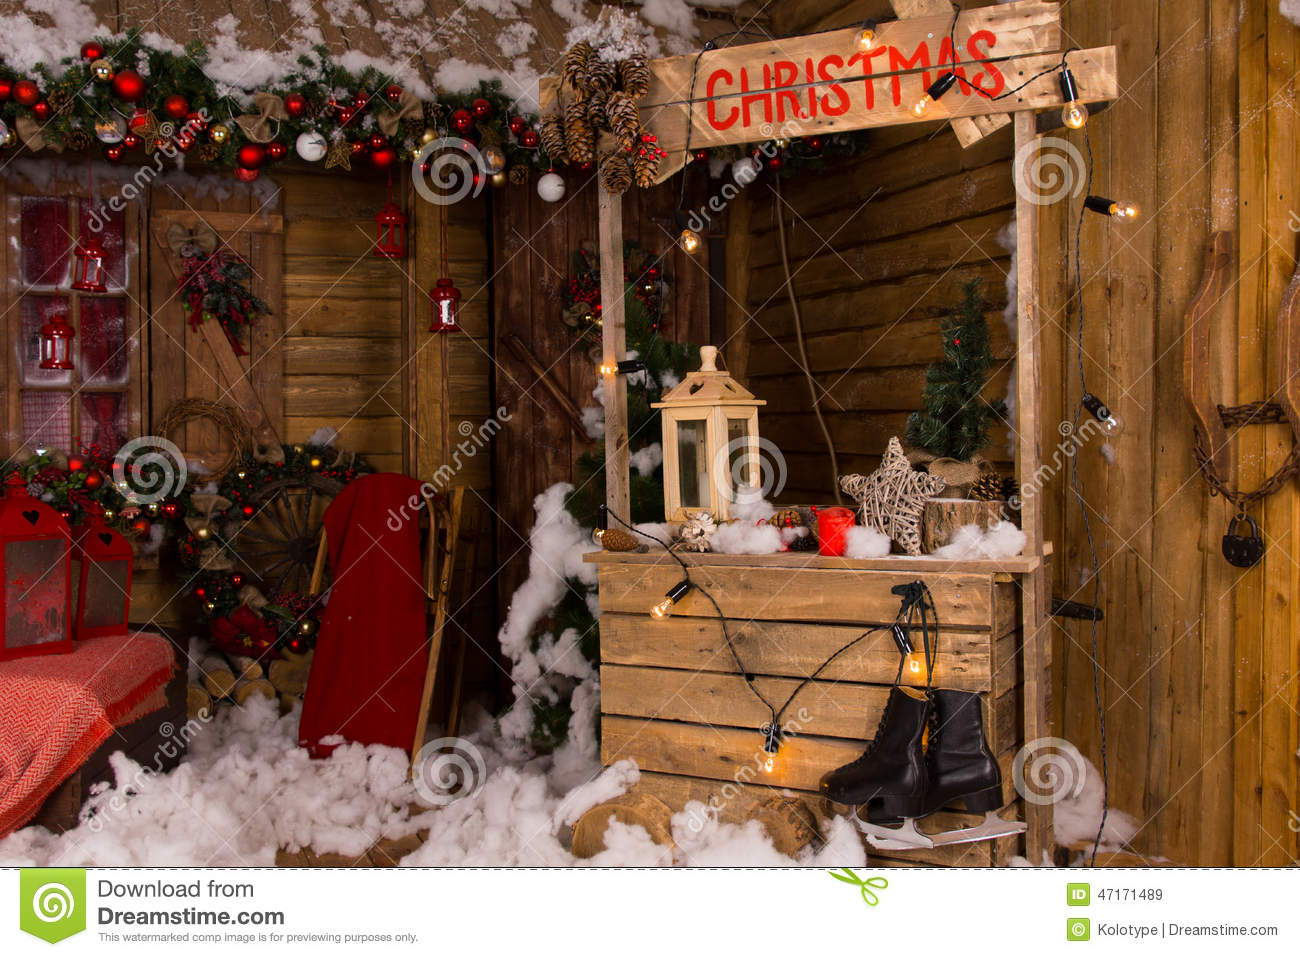 Christmas booth inside a wooden house stock photo image for Inside of houses decorated for christmas